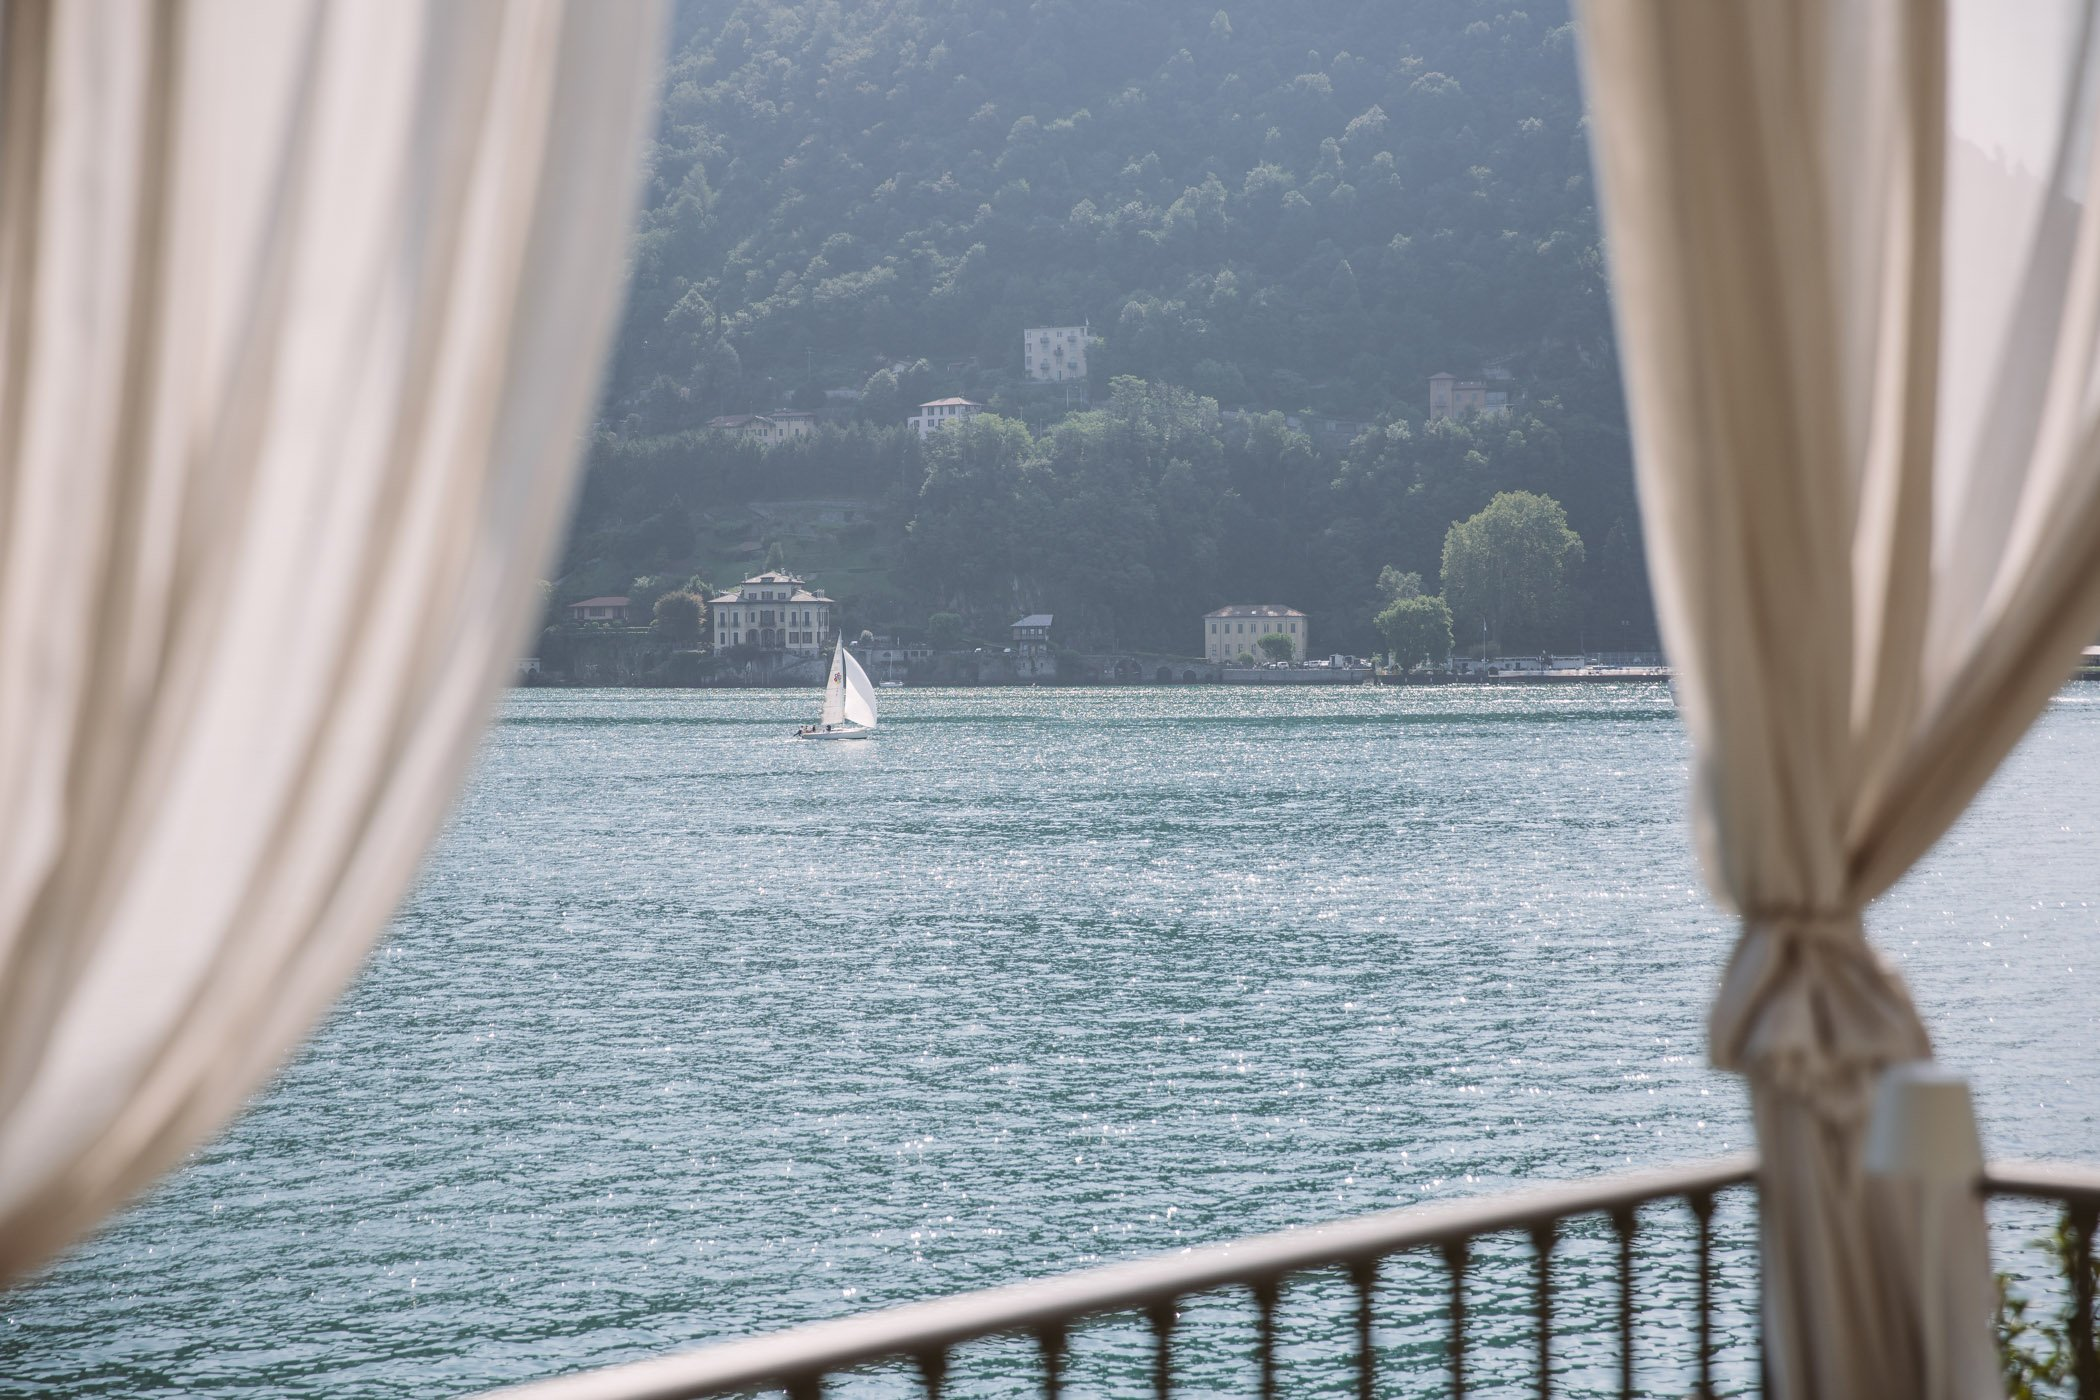 Hotel Villa Flori by Lario Hotels at Lago di Como